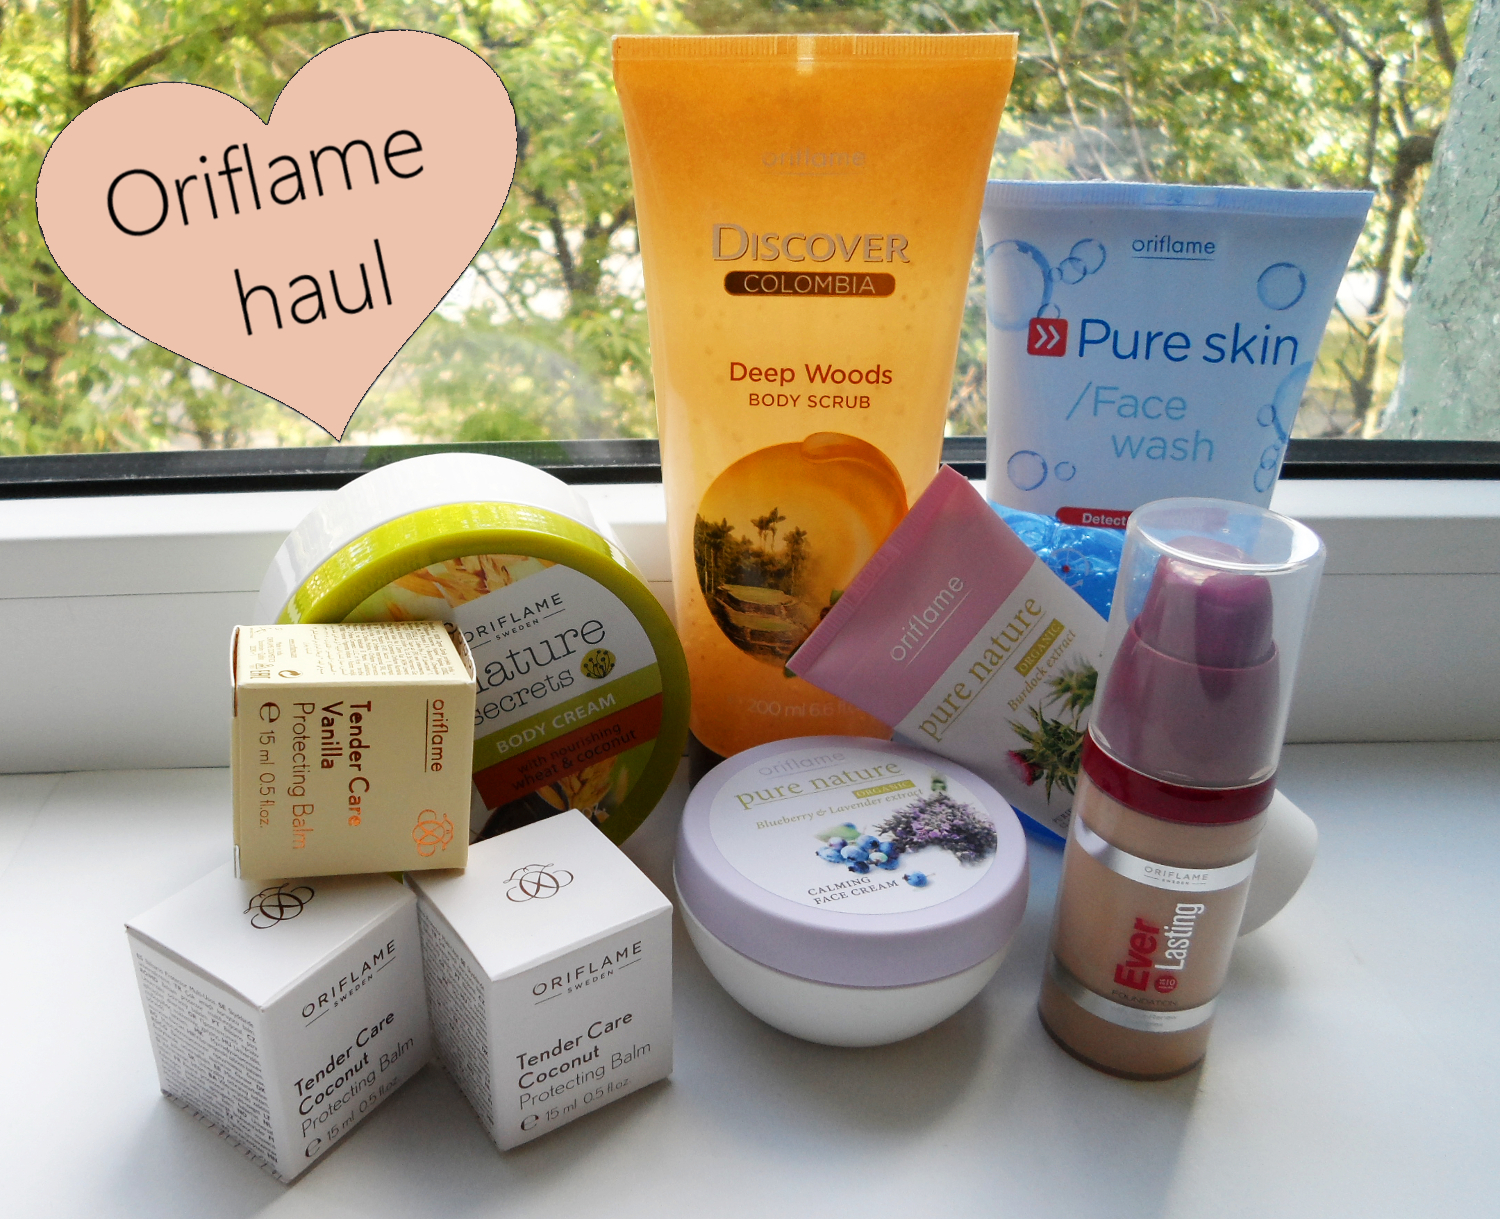 oriflame beauty haul, oriflame cosmetics review, beauty buys